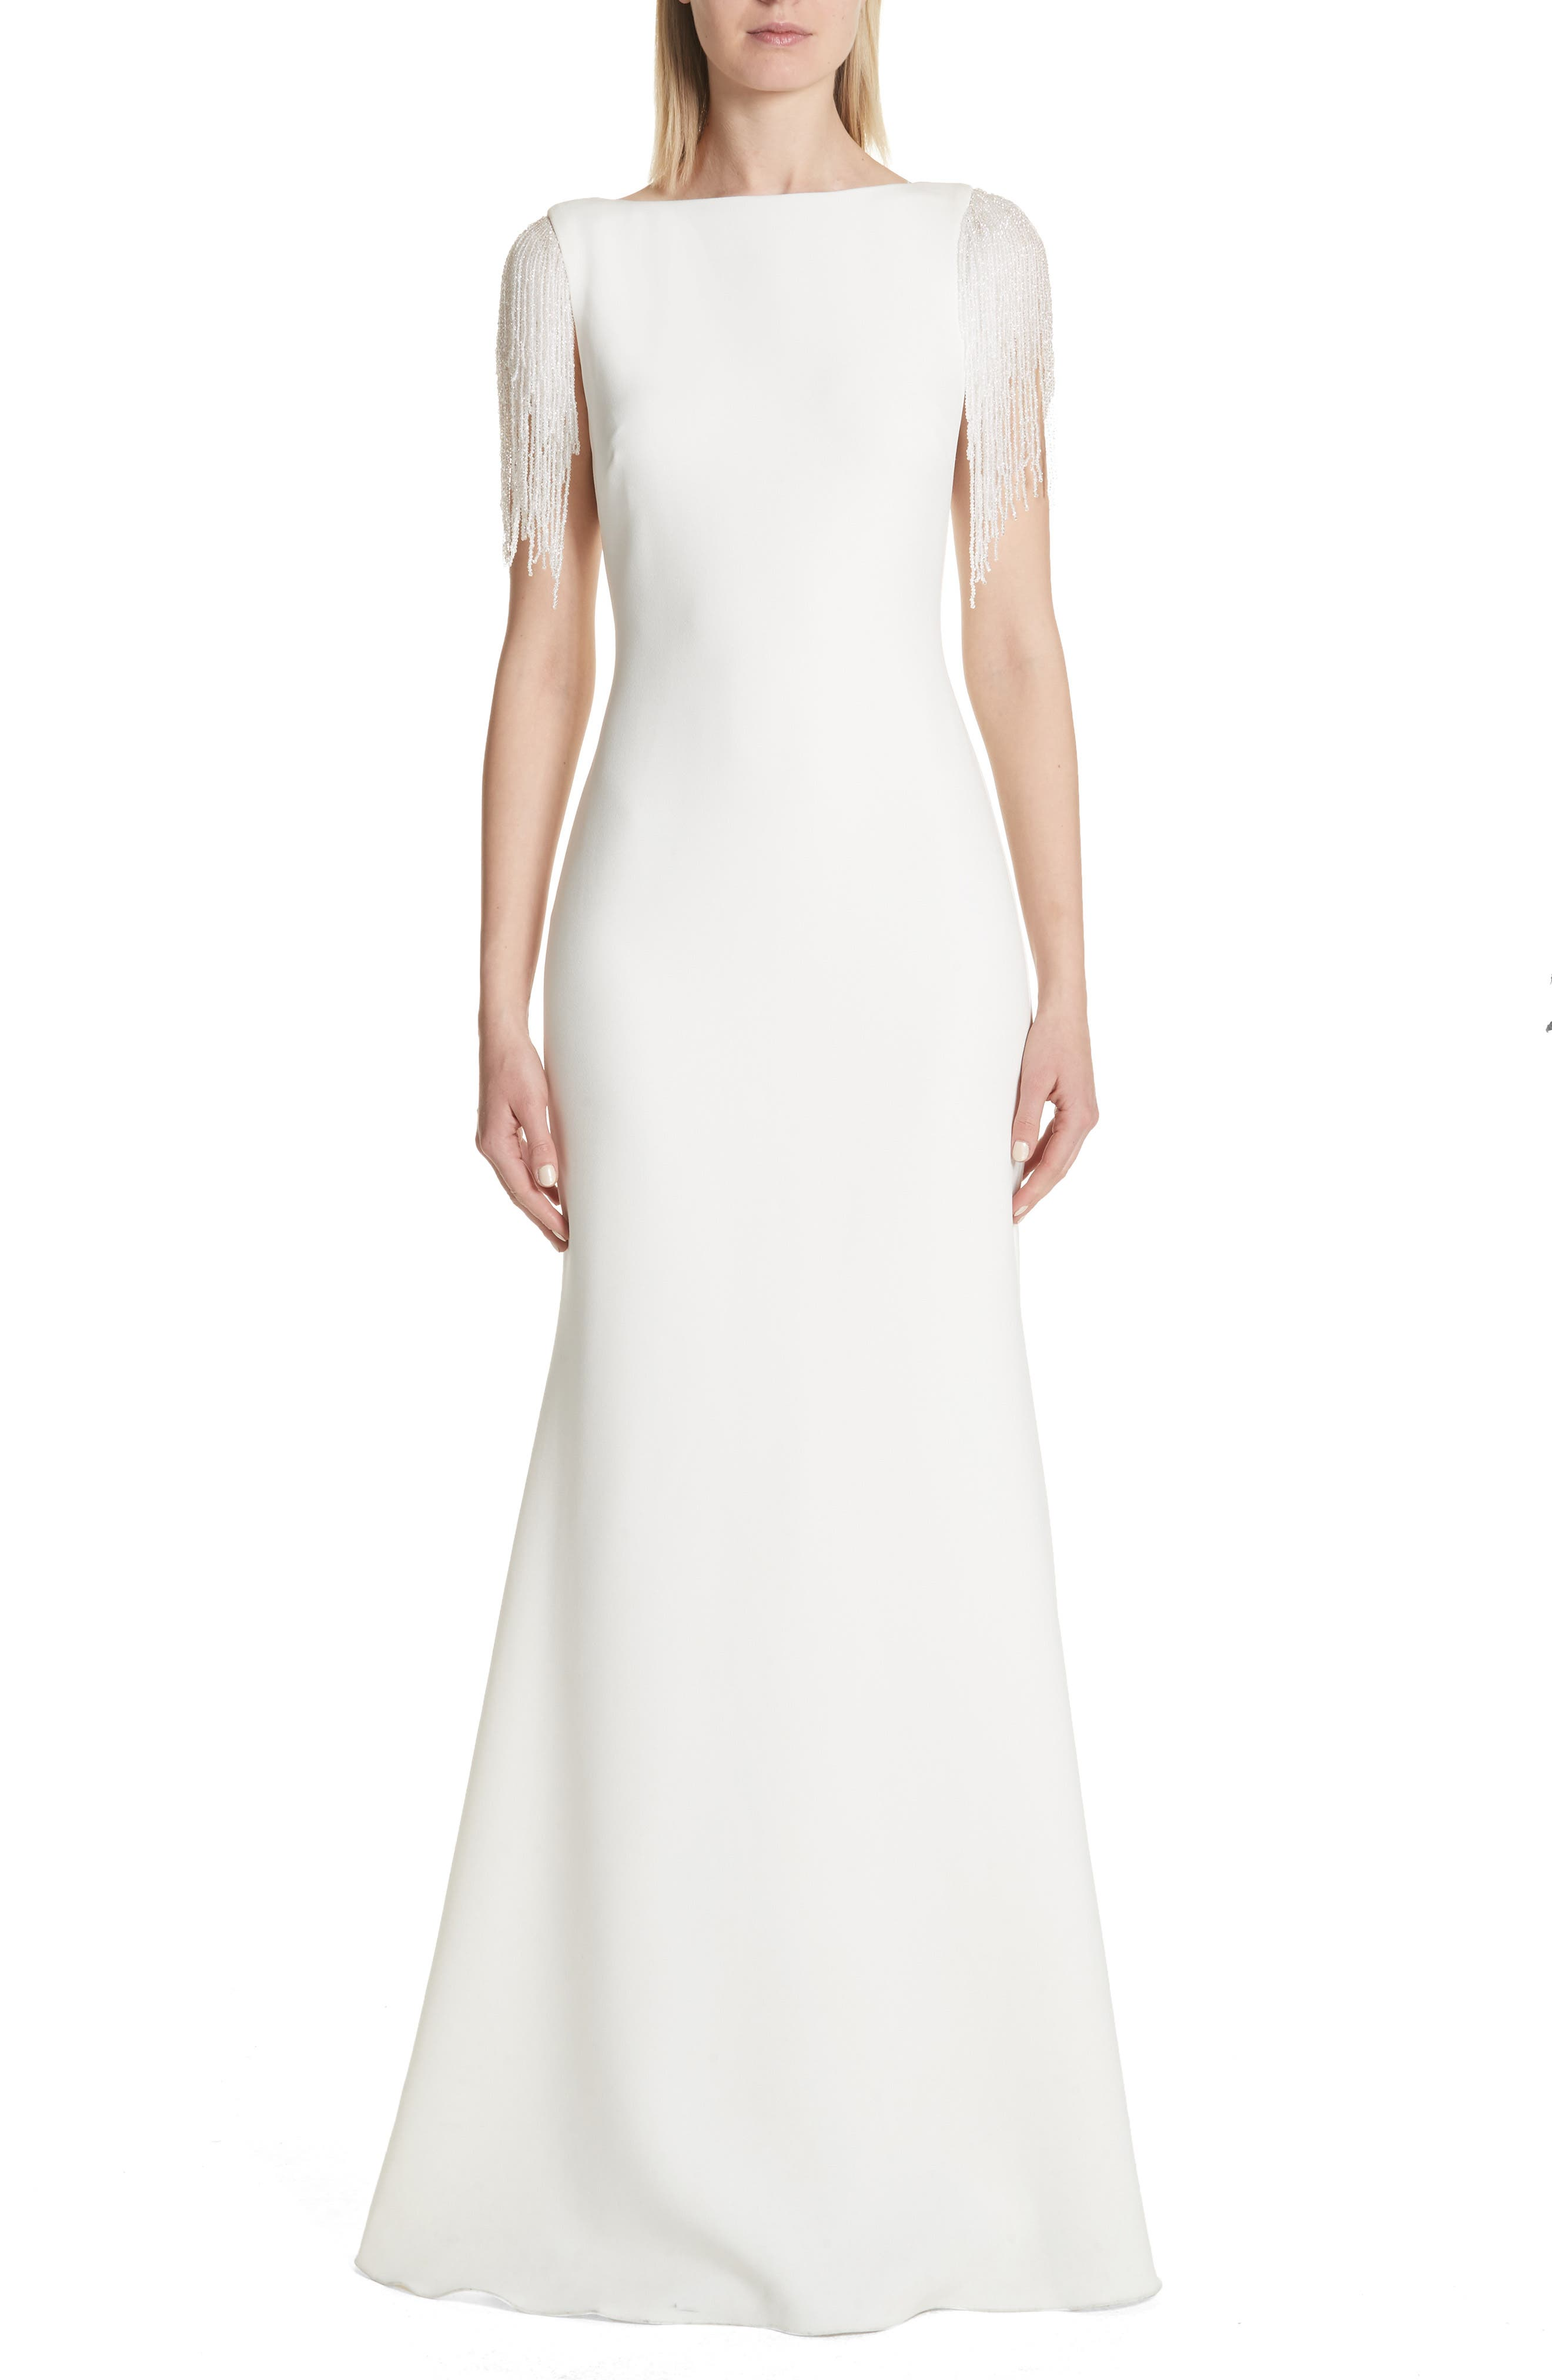 Badgley Mischka Platinum Fringe Sleeve Back Cutout Gown